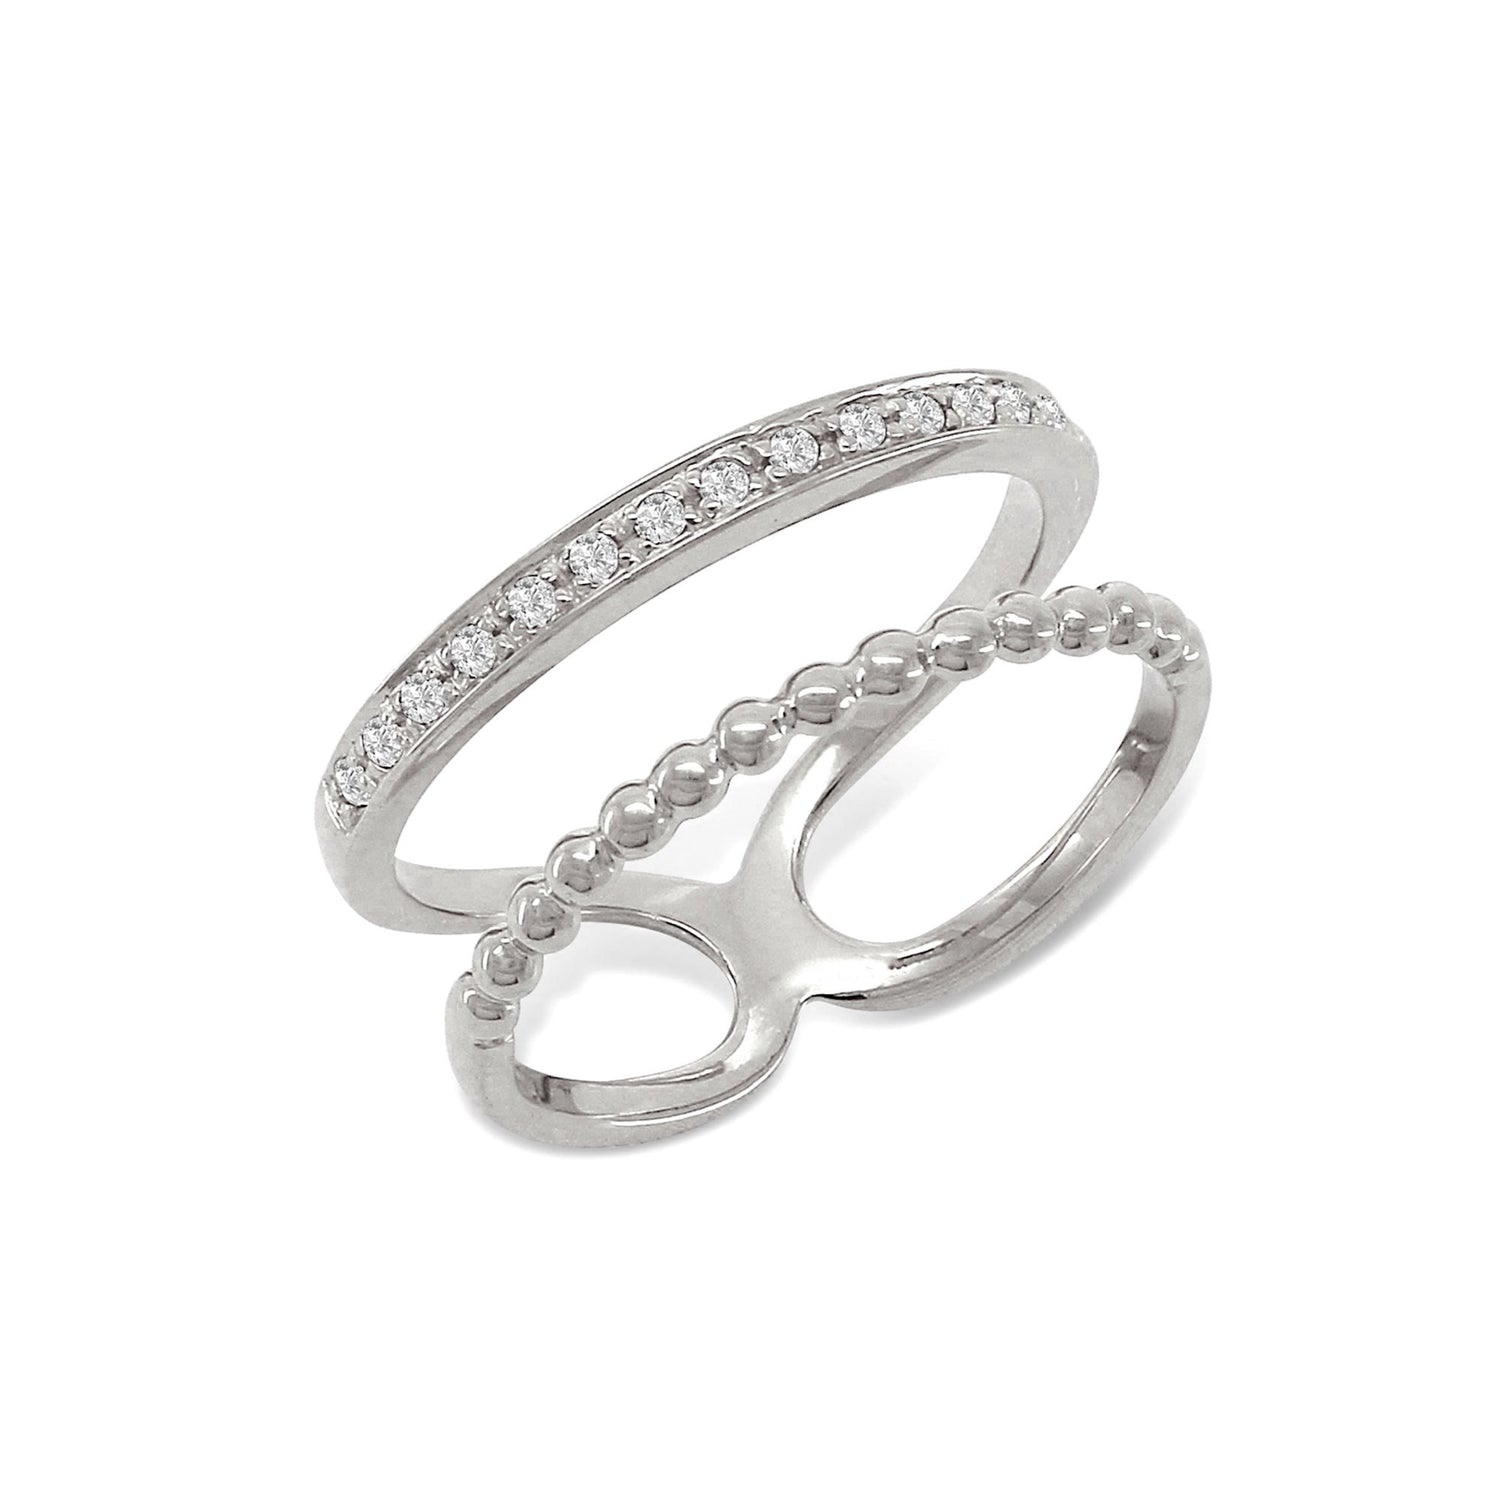 Statement Double Ring Silver